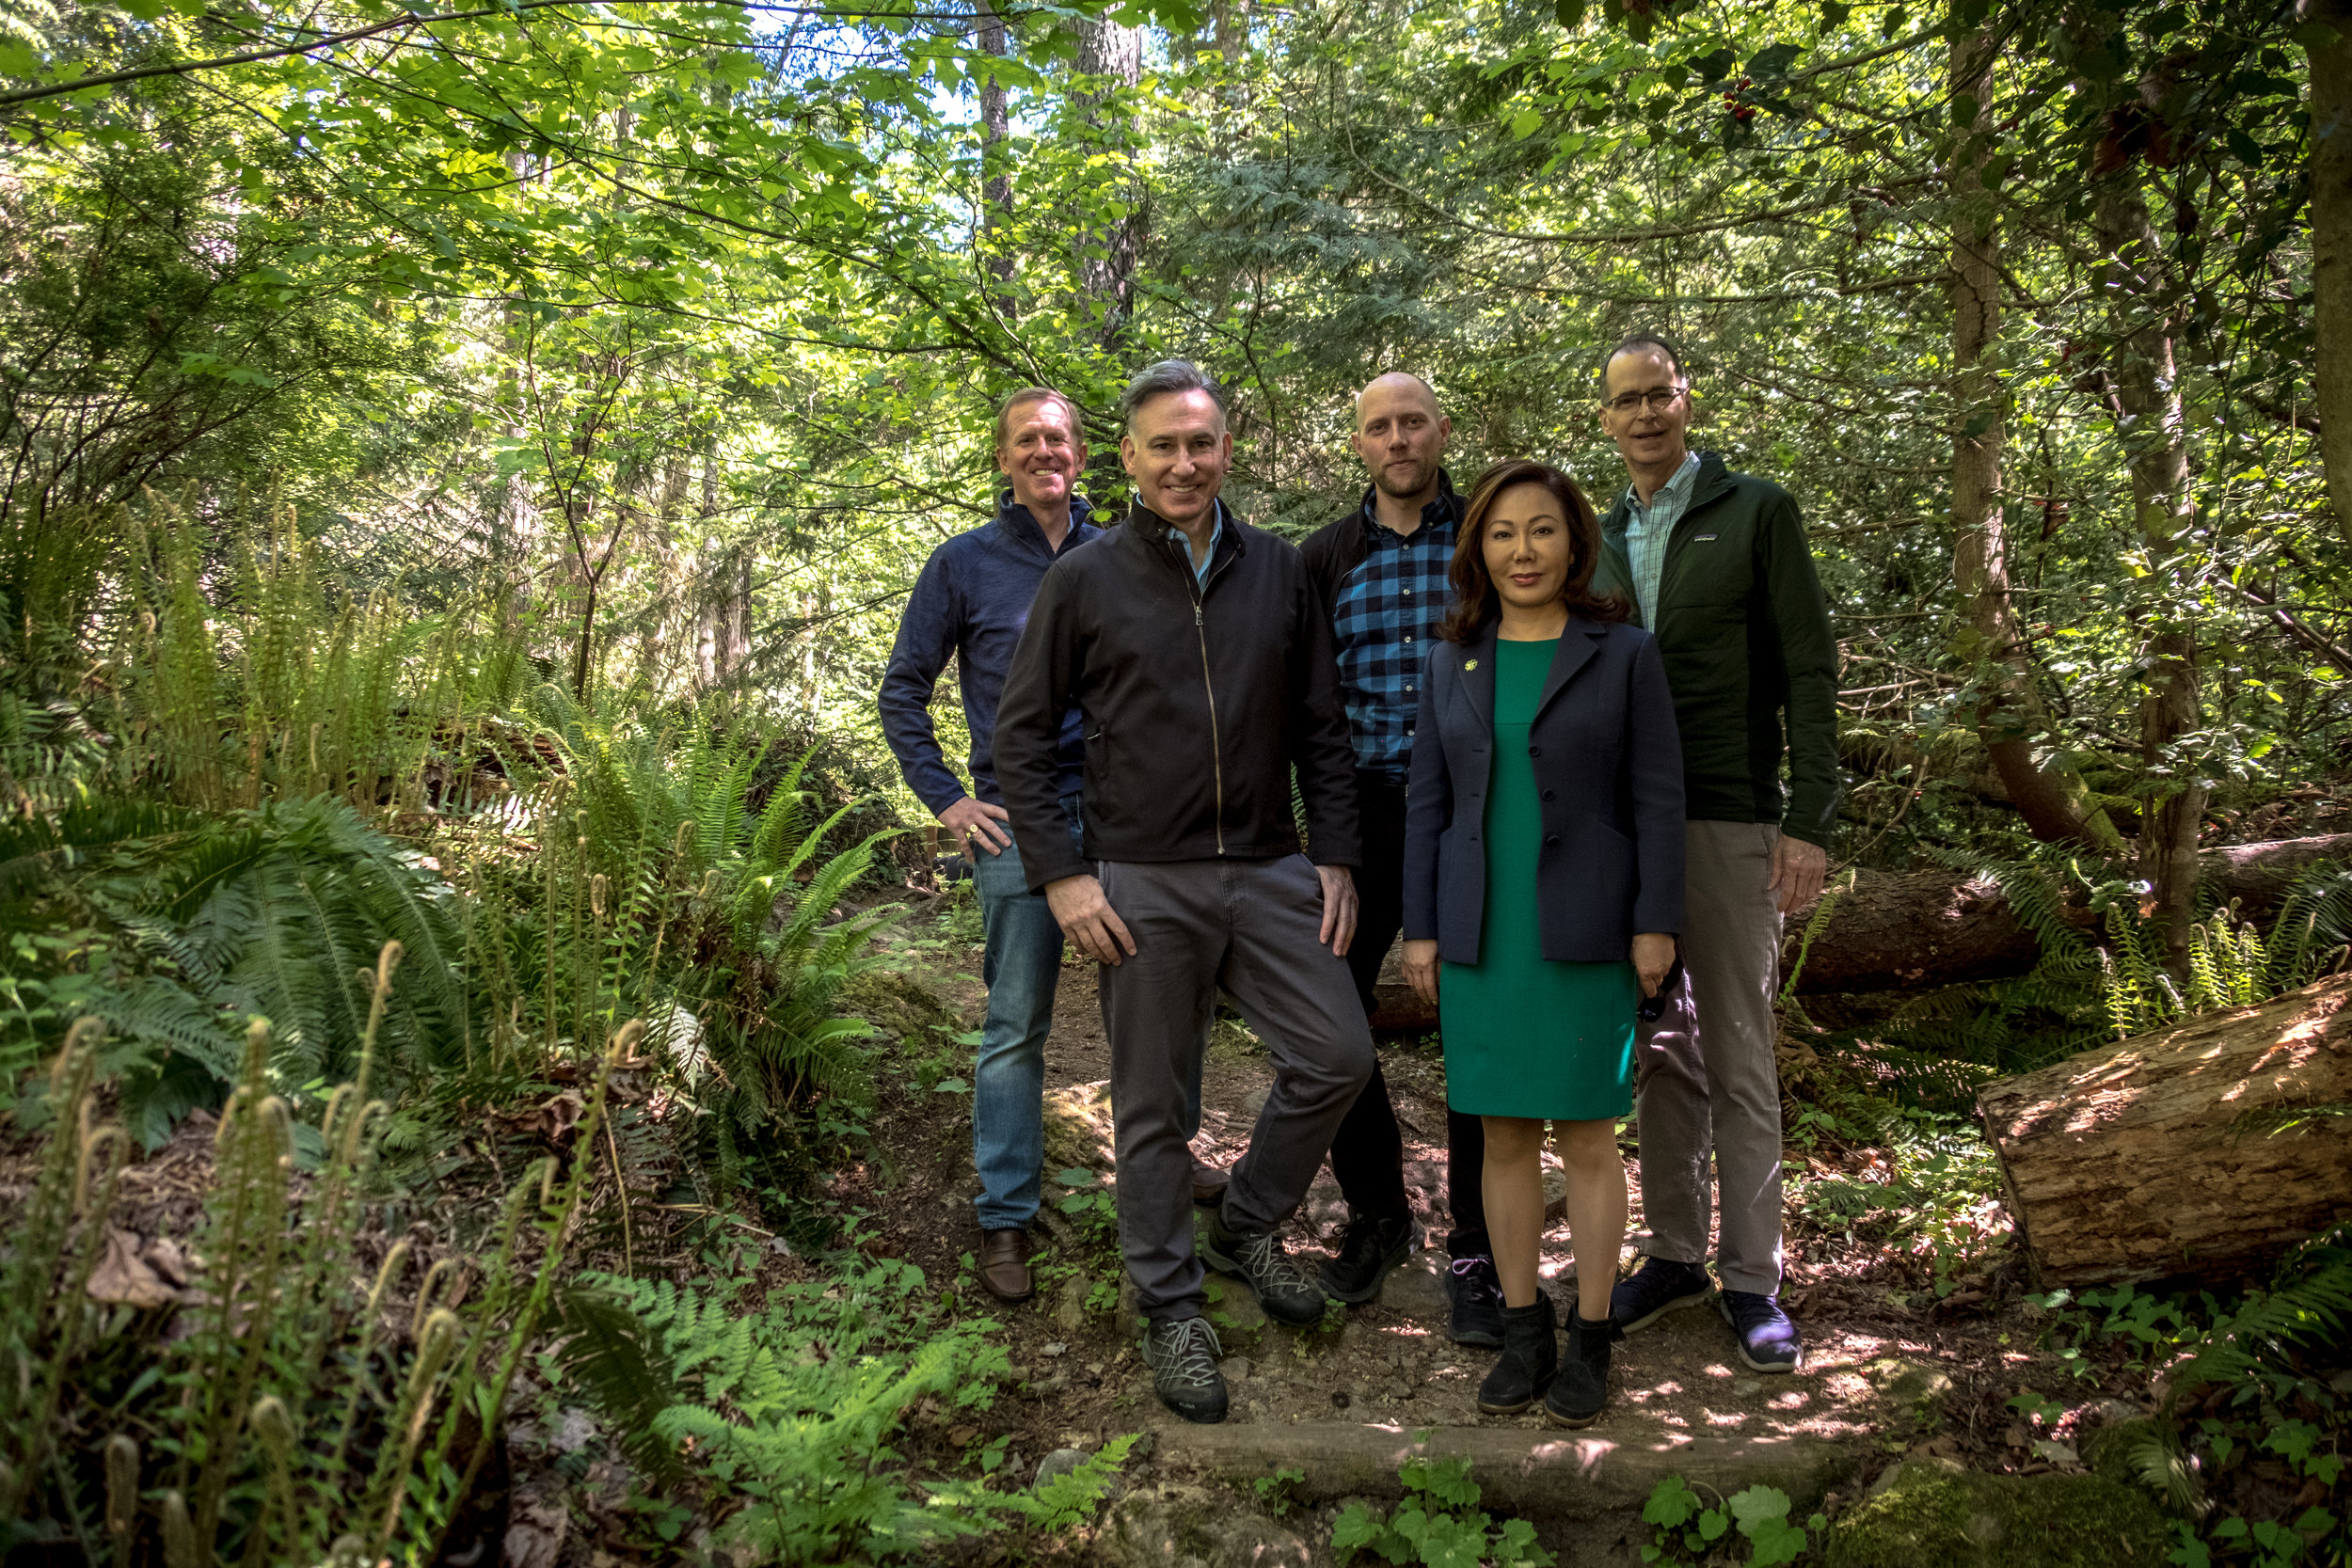 Partners at the launch of the King County Forest Carbon Program in May 2019 at Cougar Mountain Regional Park.  Left to right: Stephen Killeen, CEO at Natural Capital Partners, King County Executive Dow Constantine, Lucas Joppa, Chief Environmental Officer at Microsoft, Helena Park, Founder and CEO at Fishermen's Finest Inc., and Mark McPherson, Executive Director at City Forest Credits.